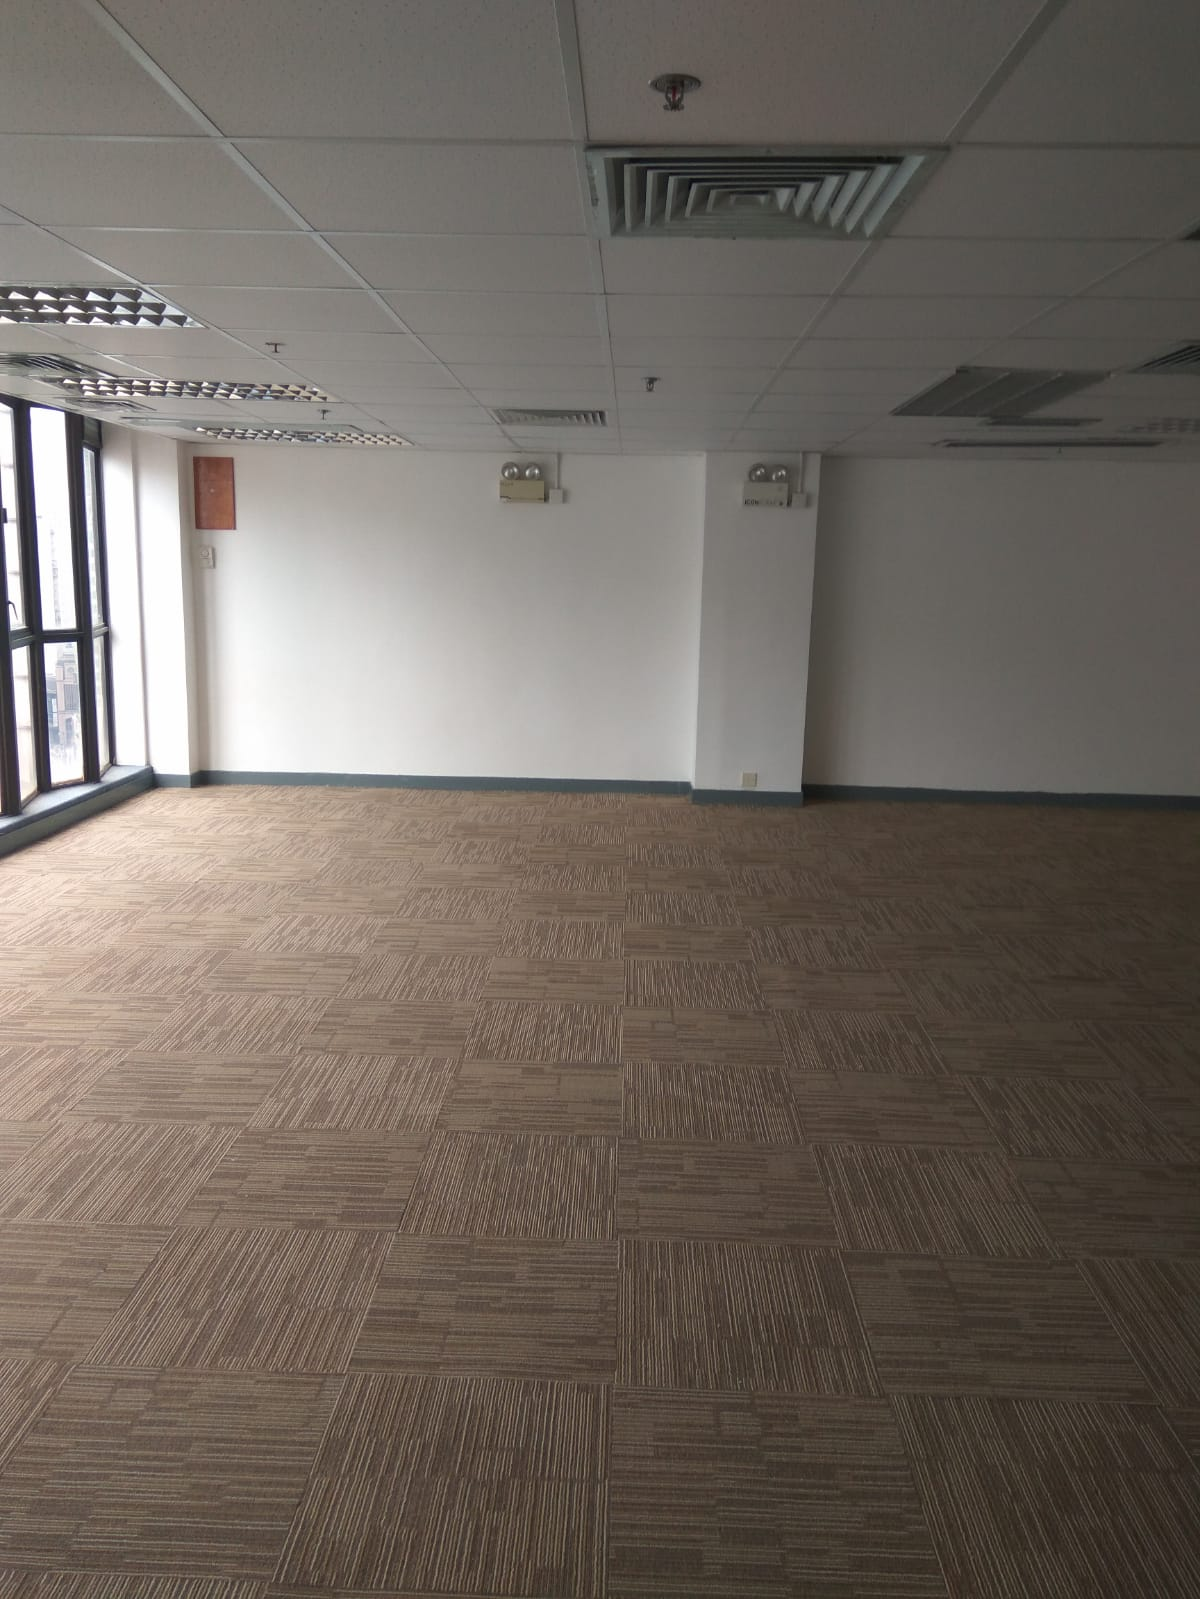 [Sheung Wan] [Wing Tuck Commercial Centre] Renovated office, ready to use, open views